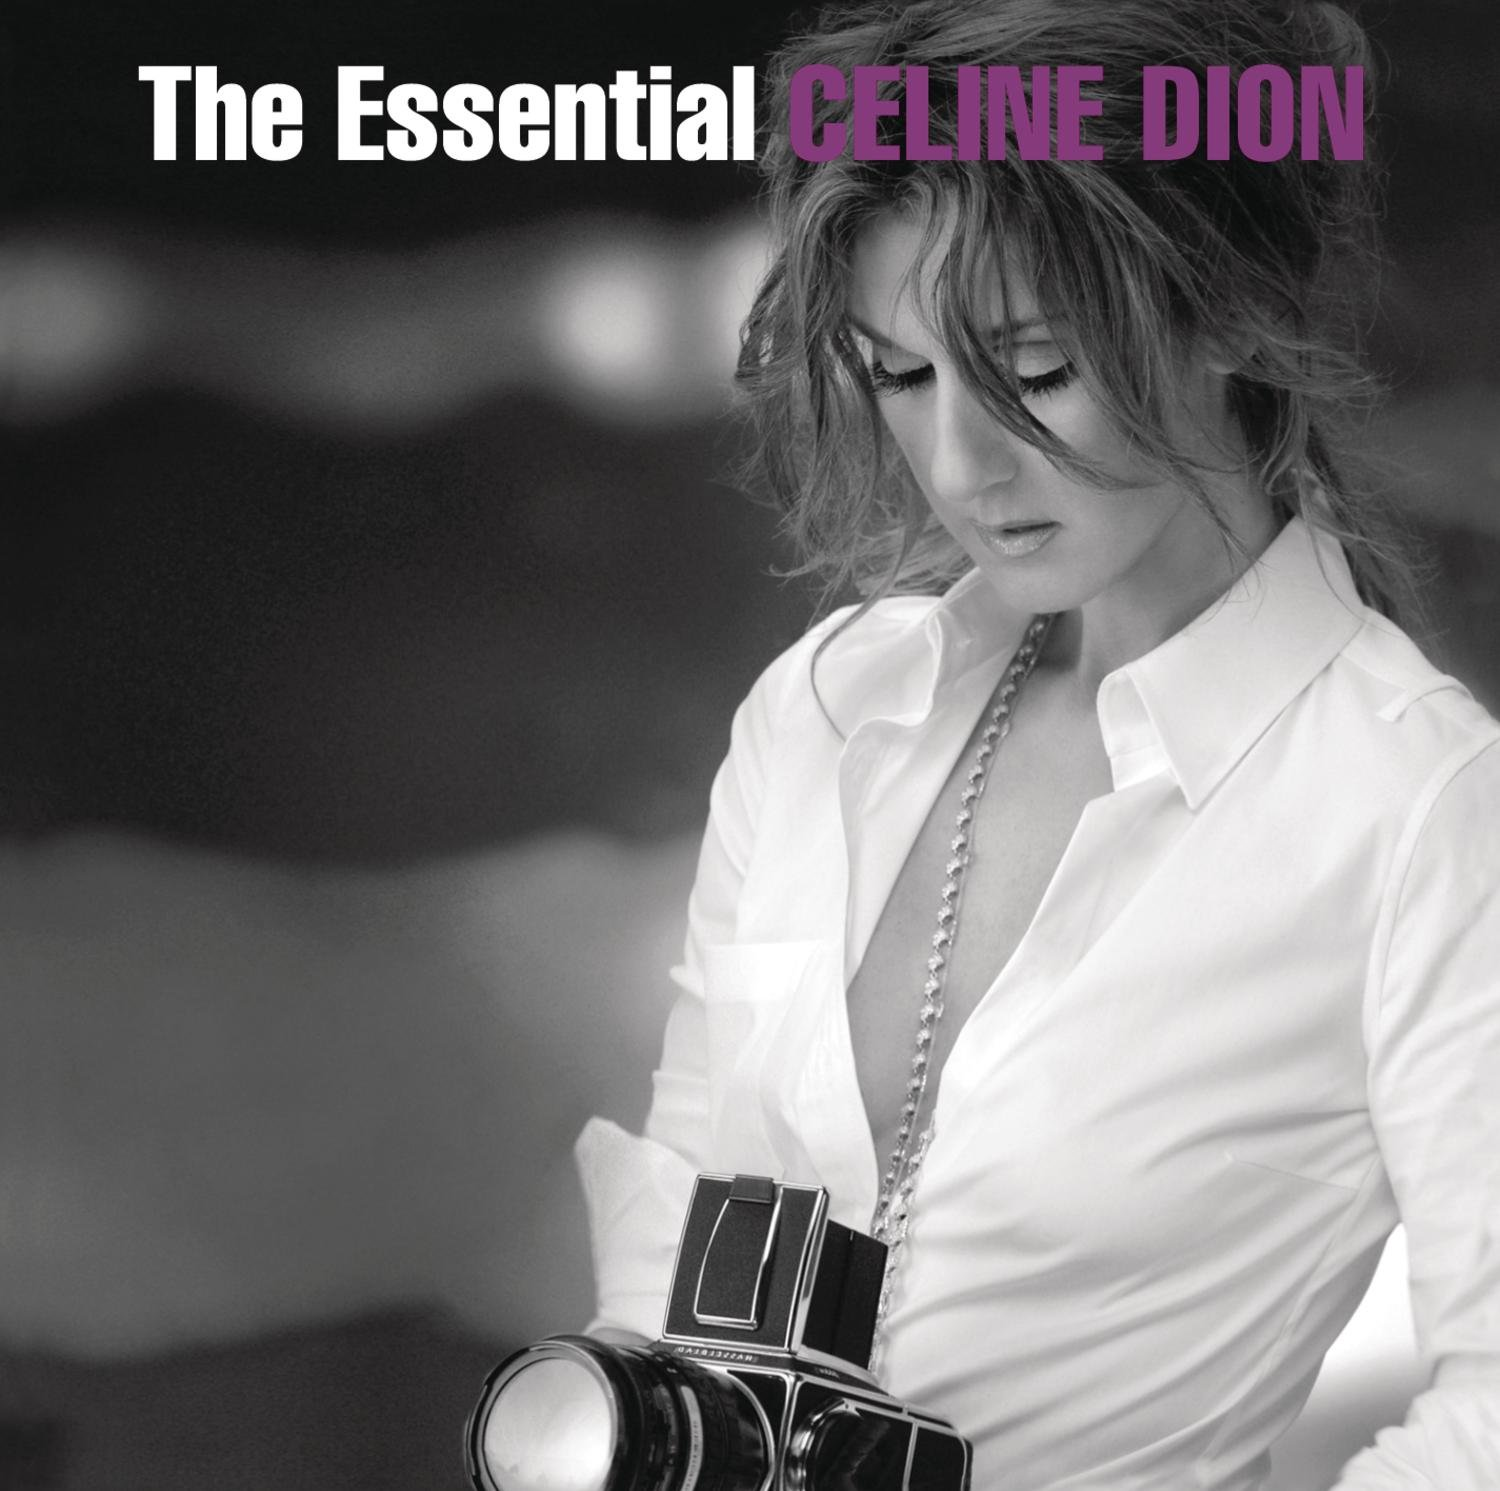 The Essential Celine Dion by Columbia